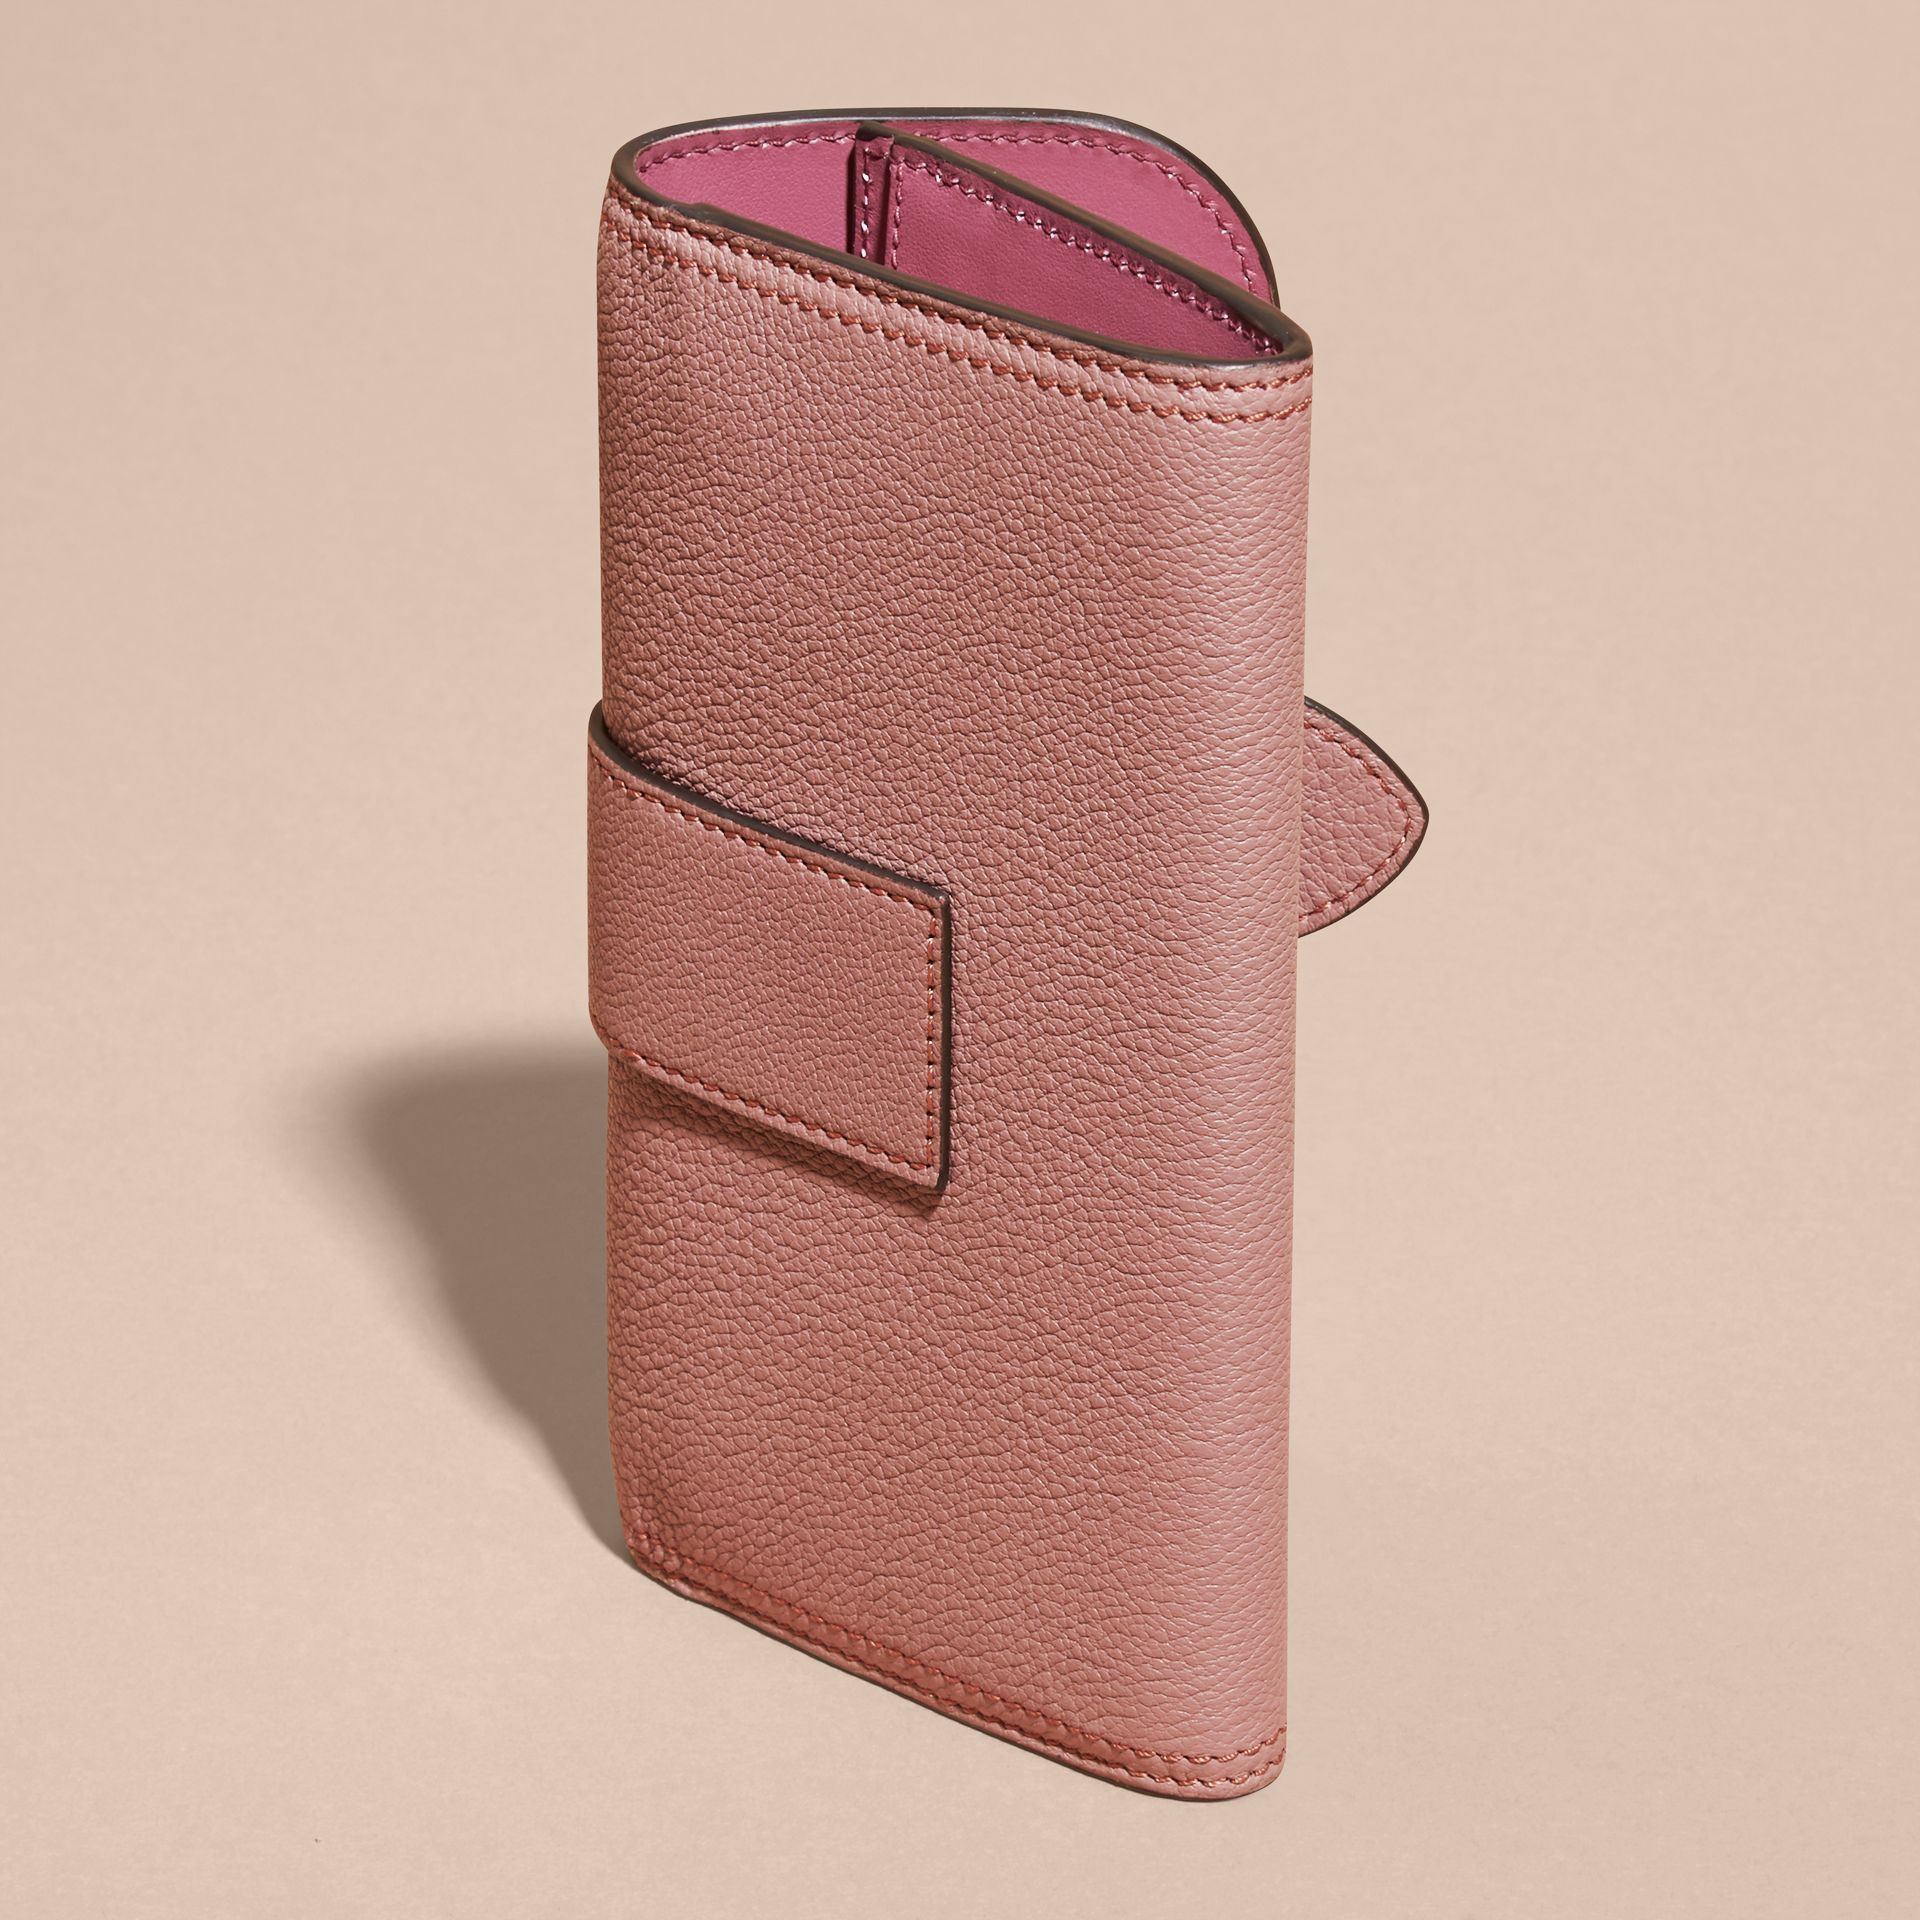 Textured Leather Continental Wallet in Dusty Pink - Women | Burberry - gallery image 4